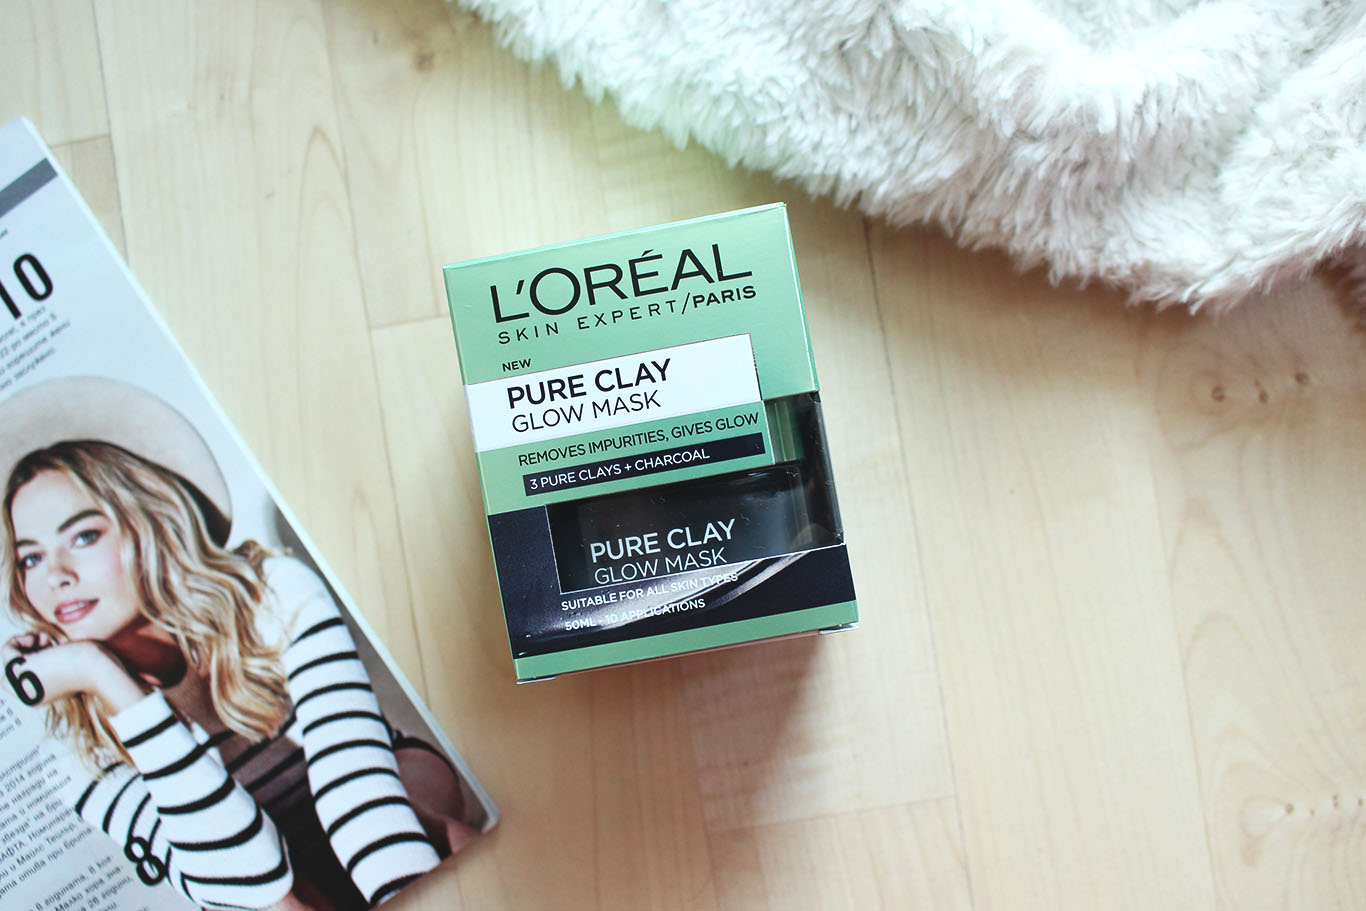 L'oreal - Pure Clay Glow Mask